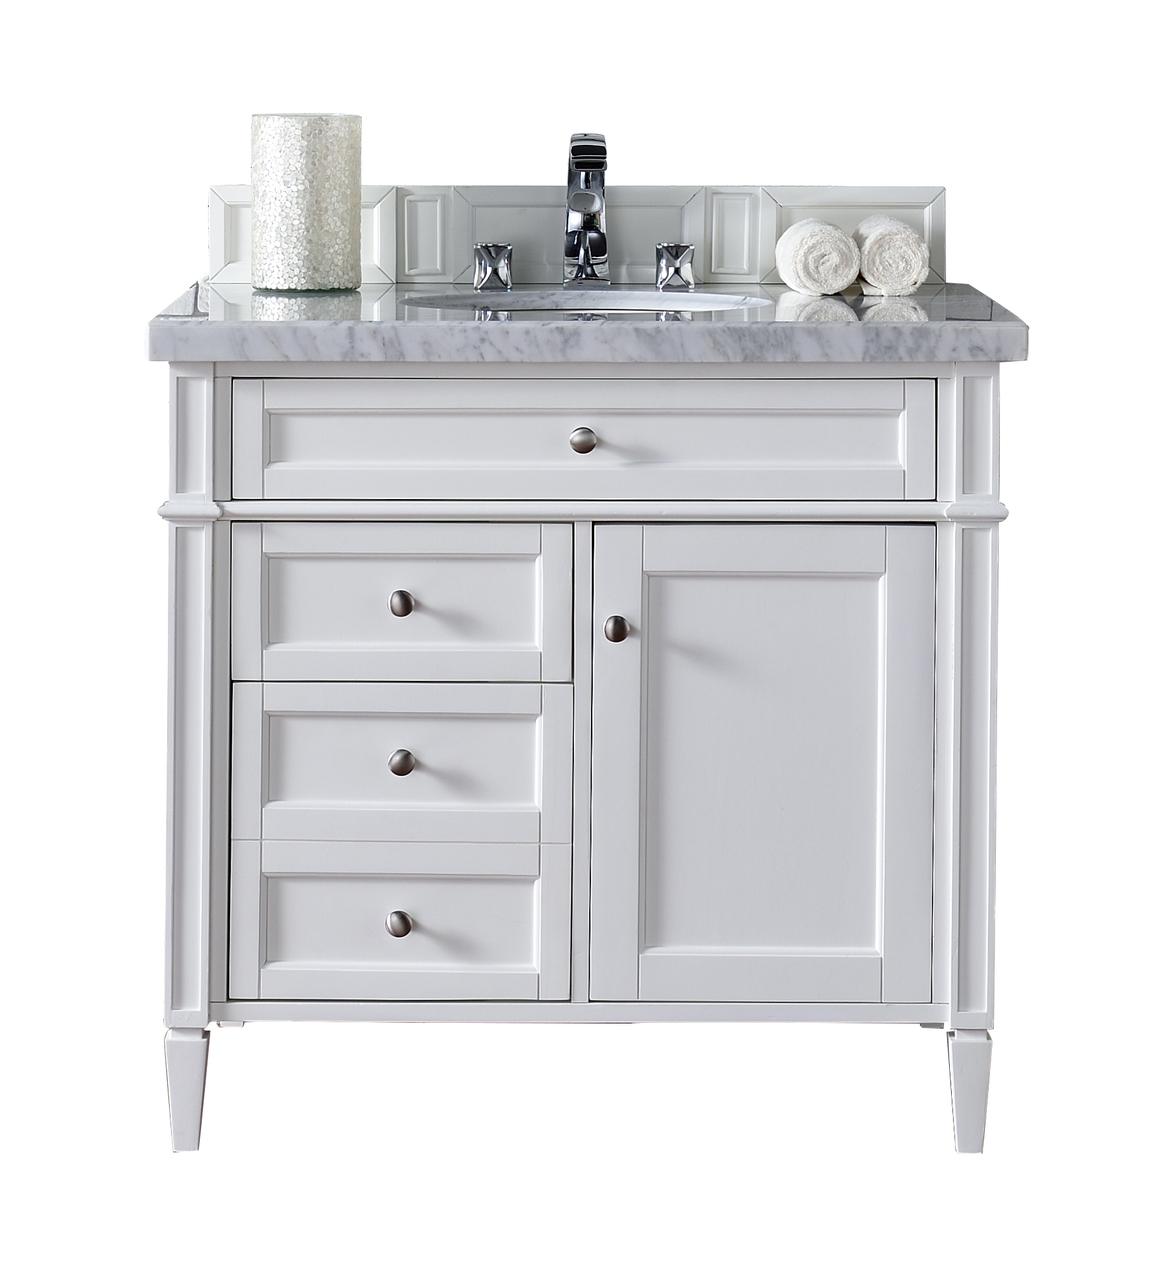 Contemporary bathroom vanities 36 inch -  Contemporary 36 Inch Single Bathroom Vanity White Finish